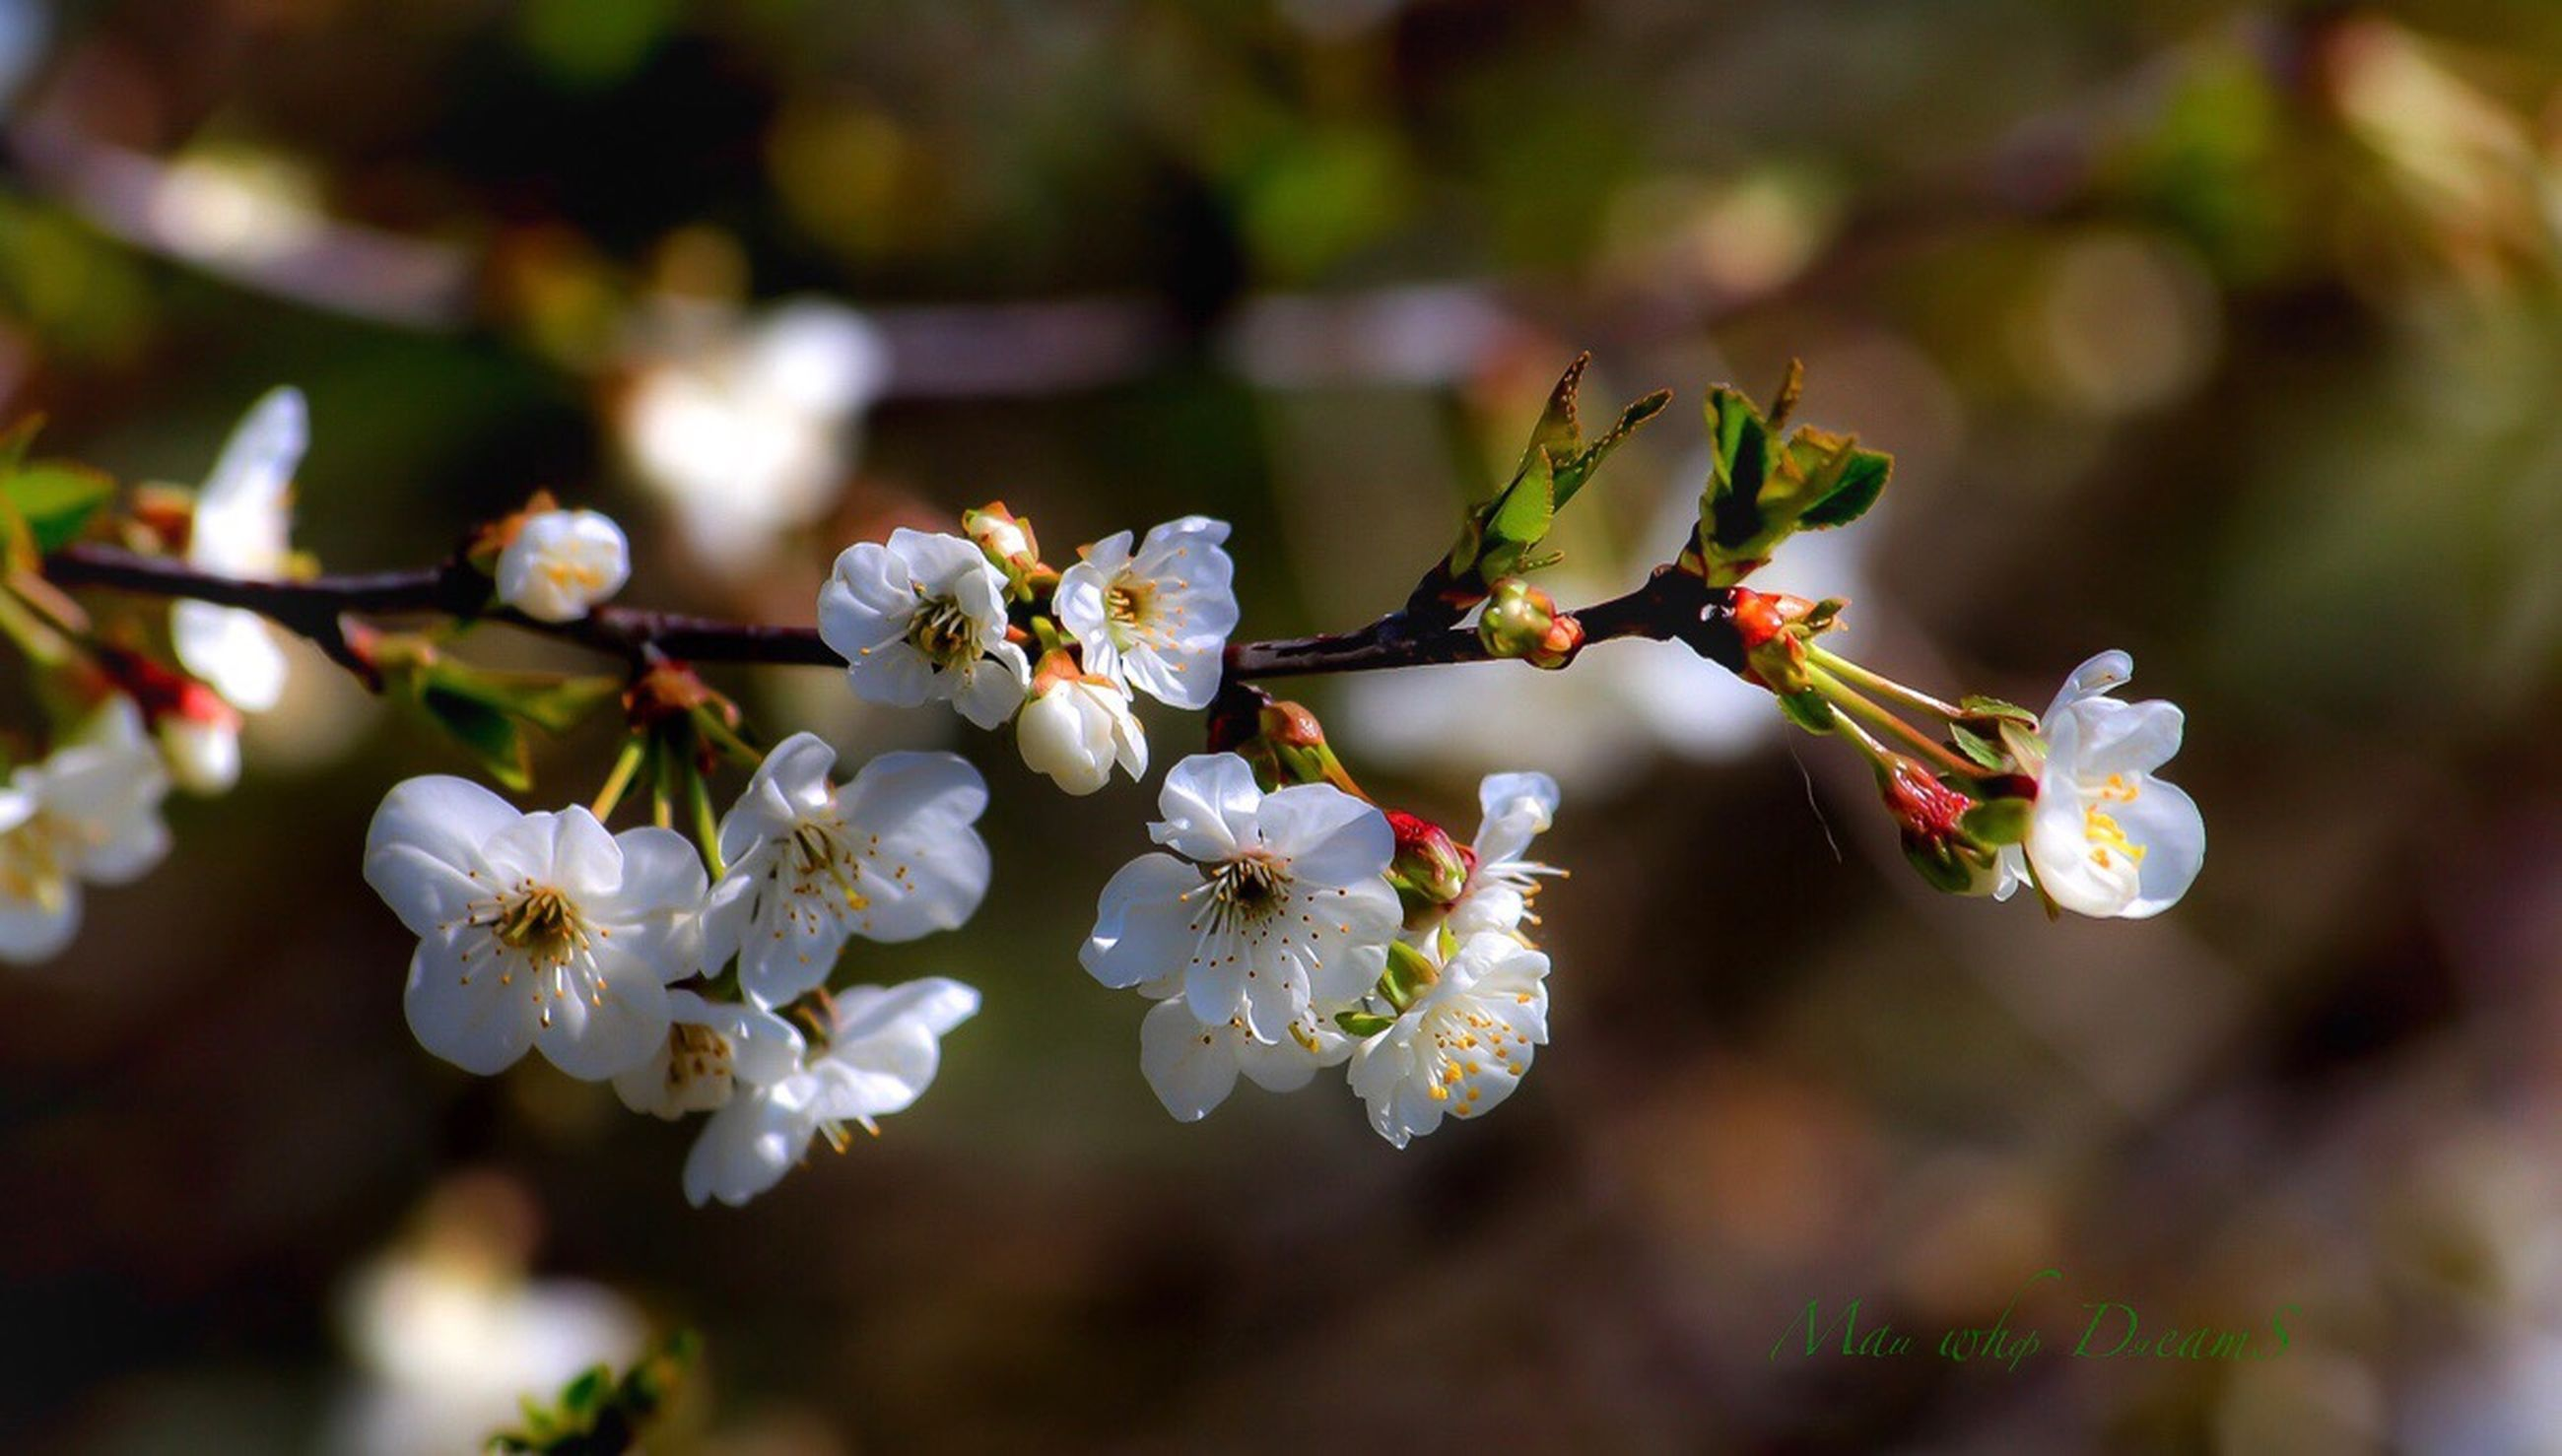 flowering plant, flower, plant, growth, fragility, beauty in nature, vulnerability, freshness, close-up, petal, blossom, flower head, white color, inflorescence, springtime, focus on foreground, tree, branch, botany, nature, no people, pollen, cherry blossom, outdoors, cherry tree, spring